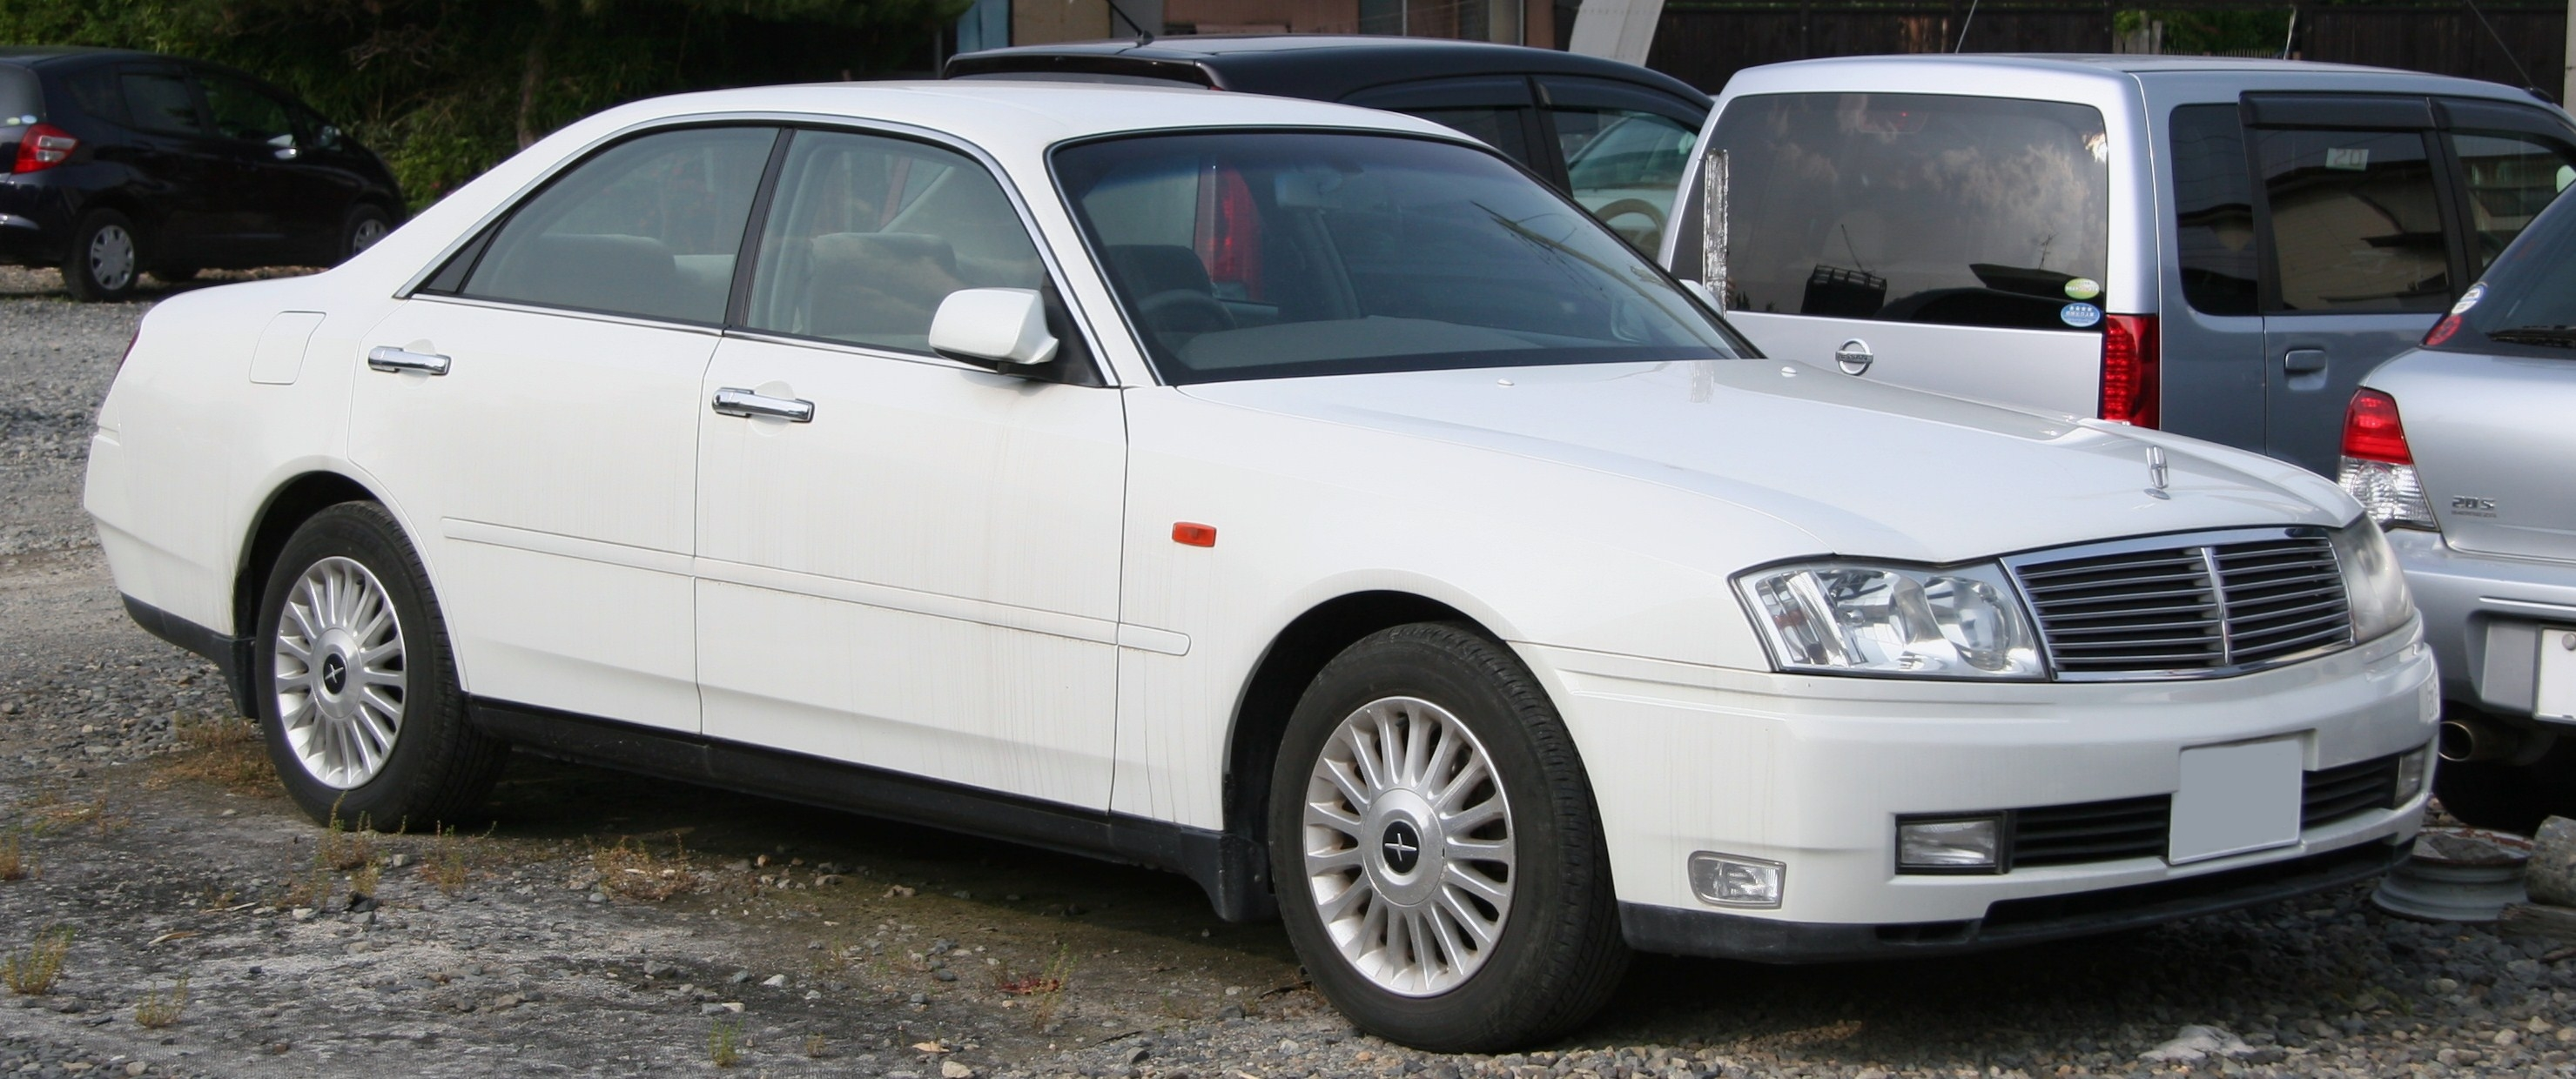 Automatic cars in india under 10 lakhs diesel 12